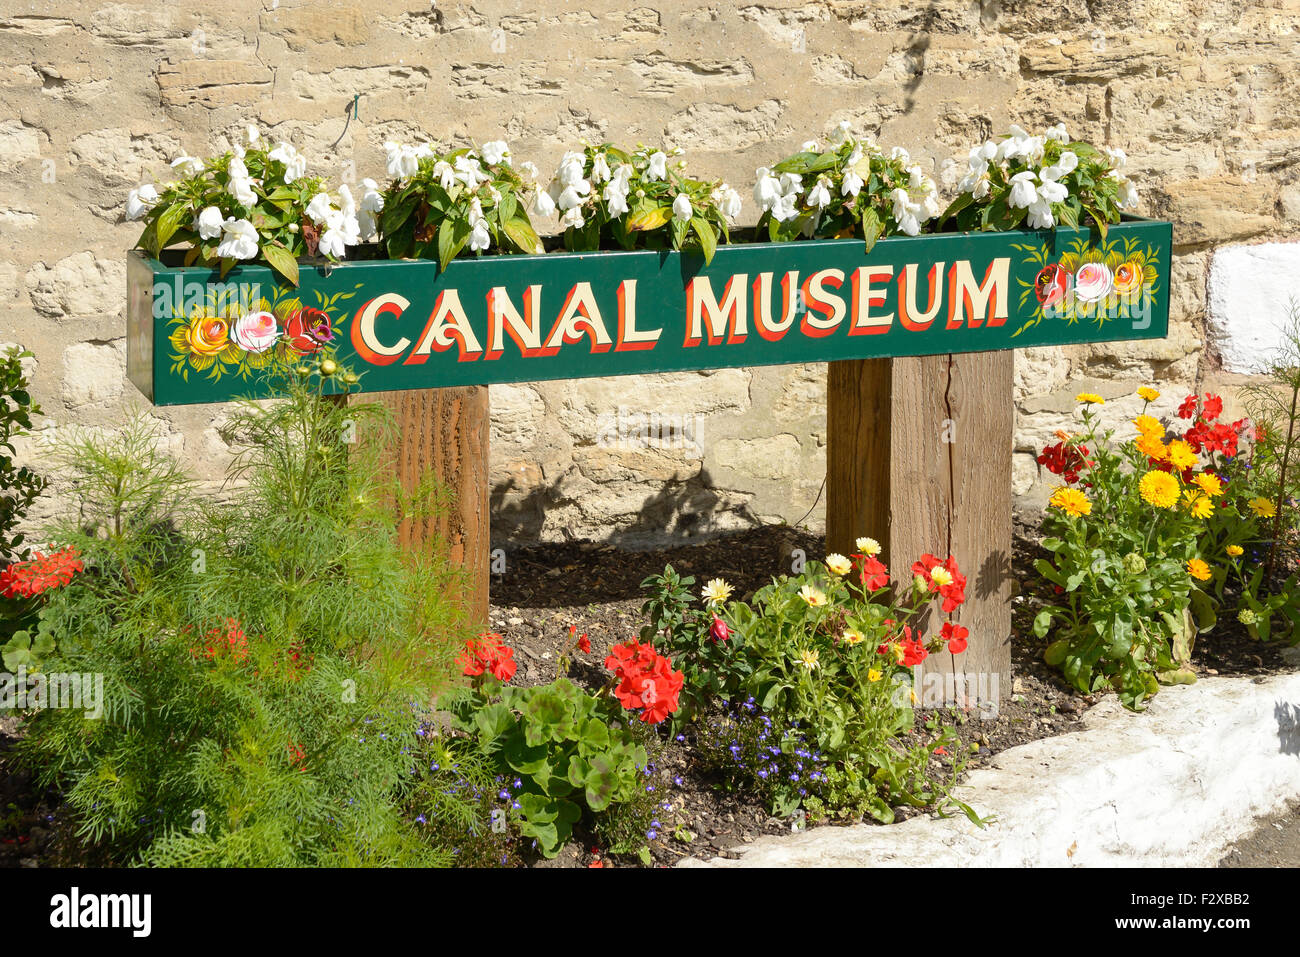 The Canal Museum on Grand Union Canal, Stoke Bruerne, Northamptonshire, England, United Kingdom - Stock Image